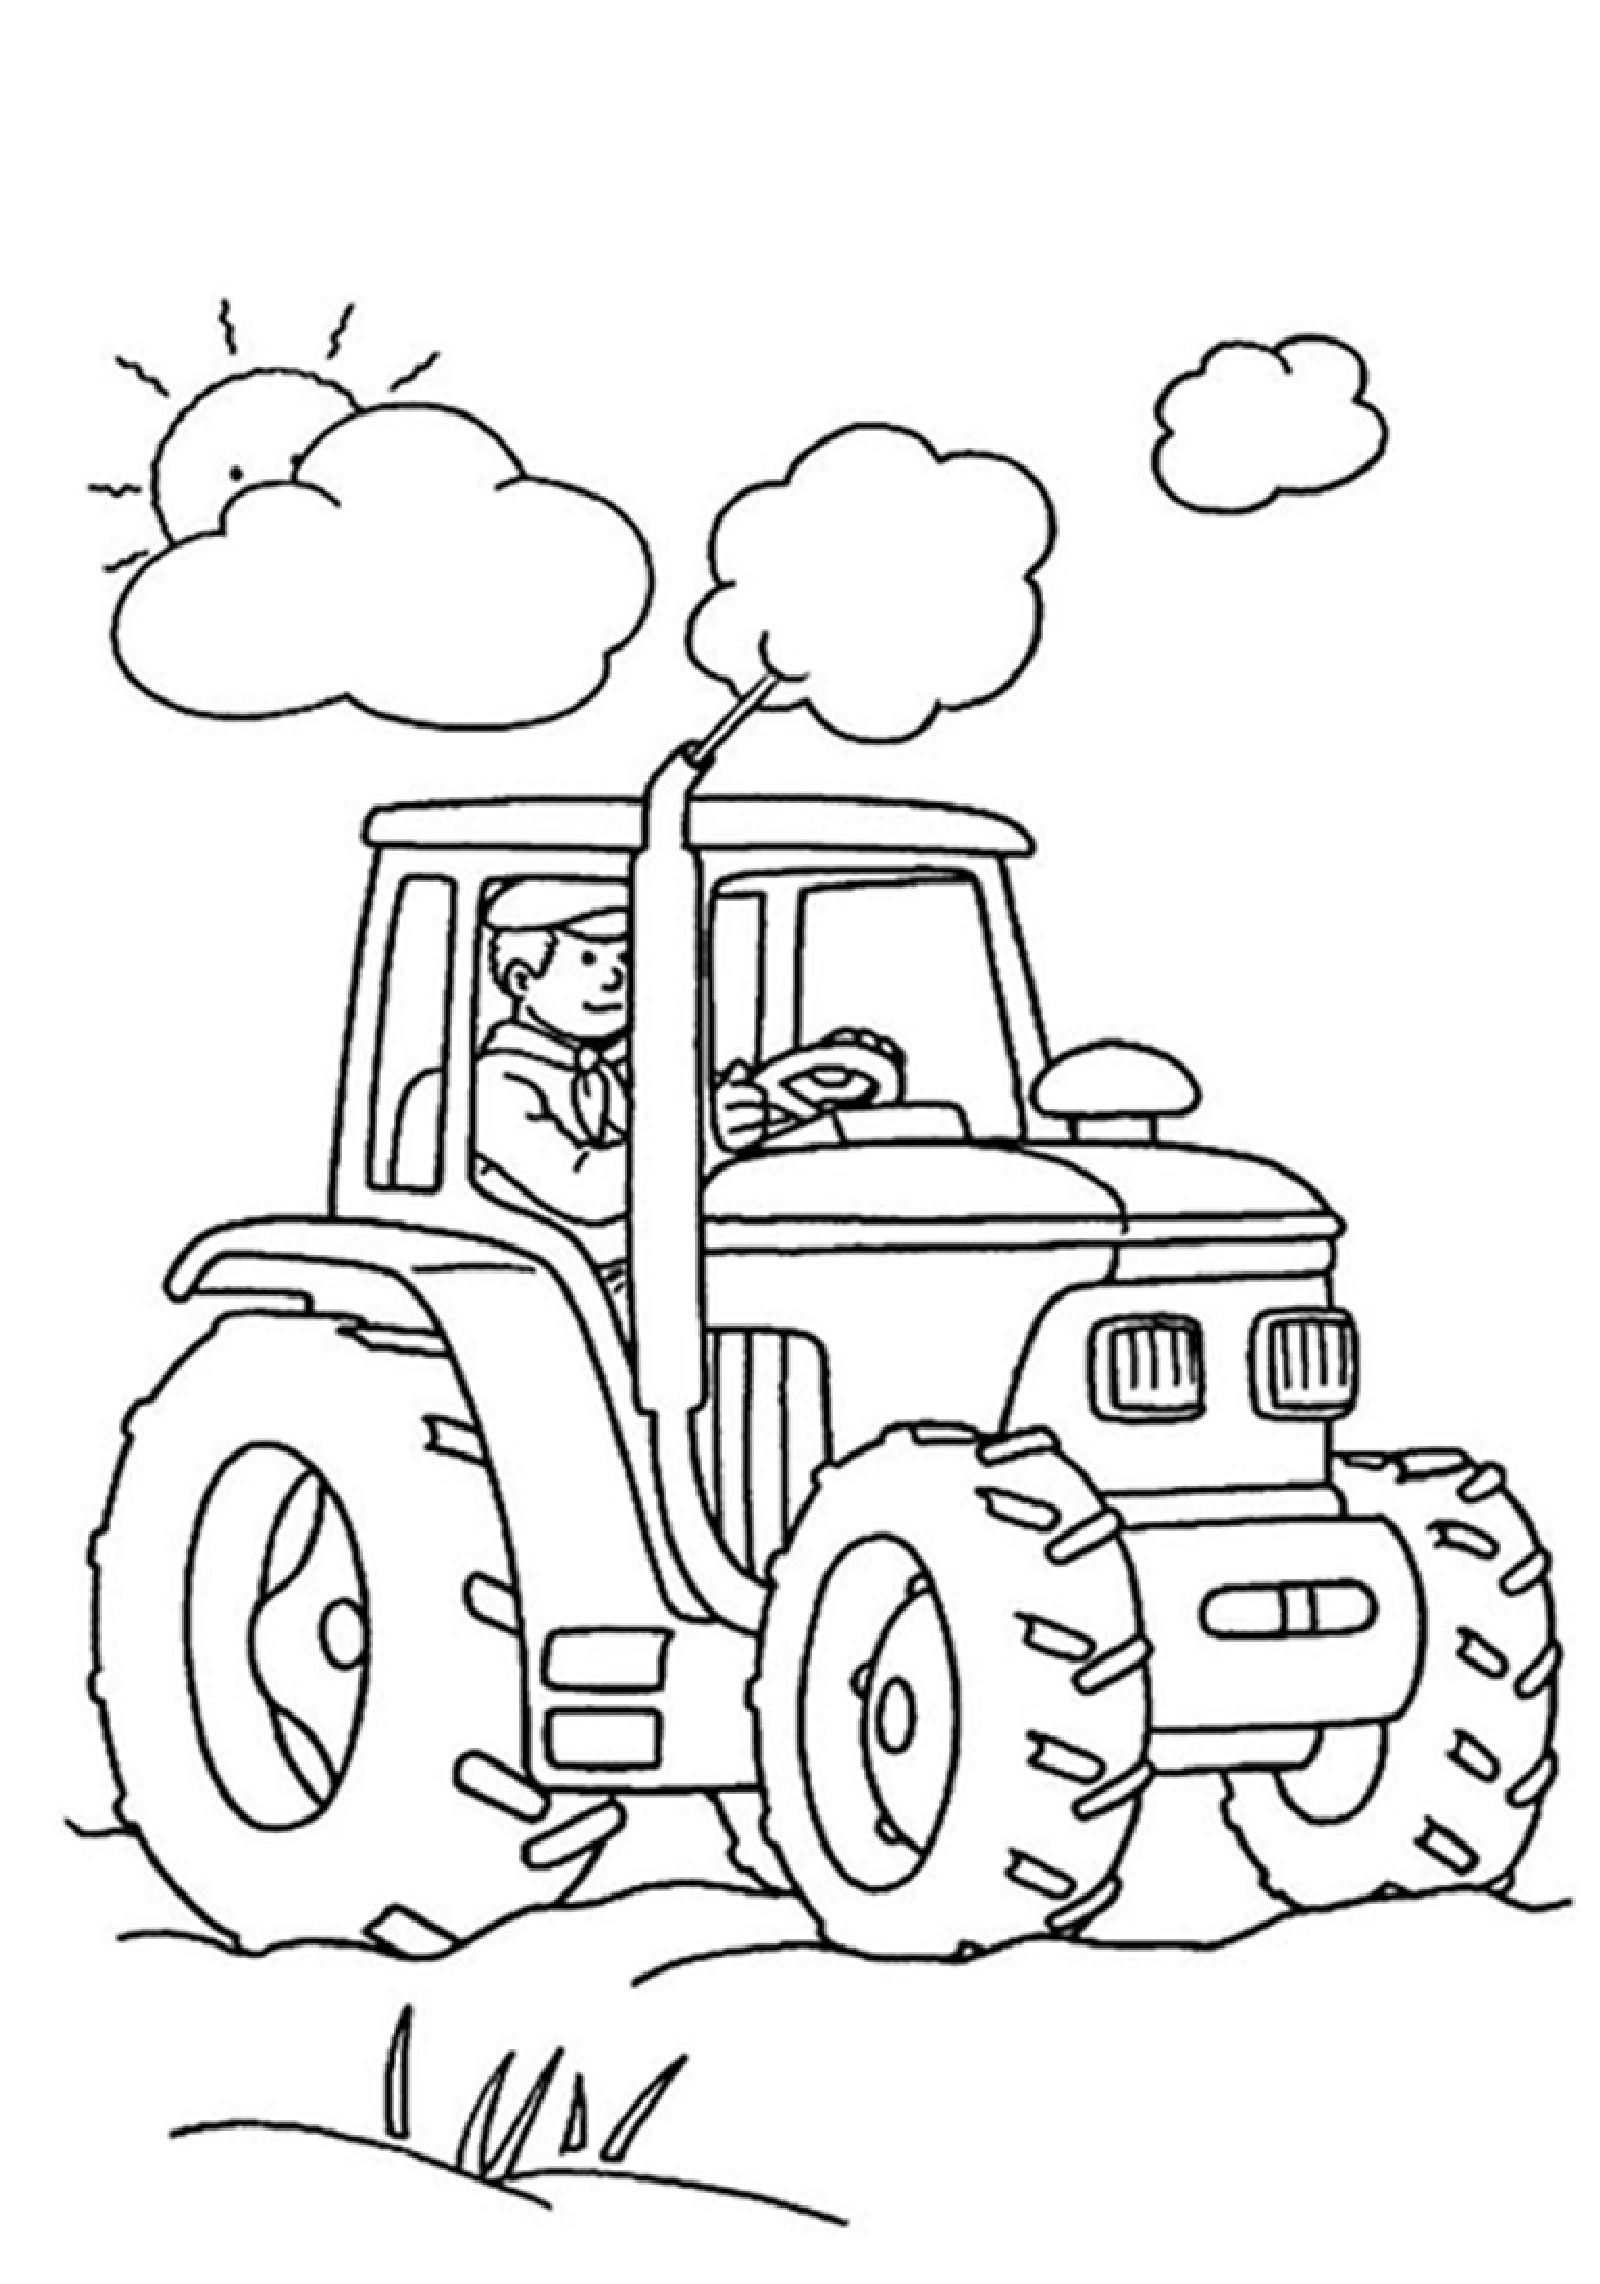 Tractor Coloring Pages to Print  Printable 13c - Free For kids